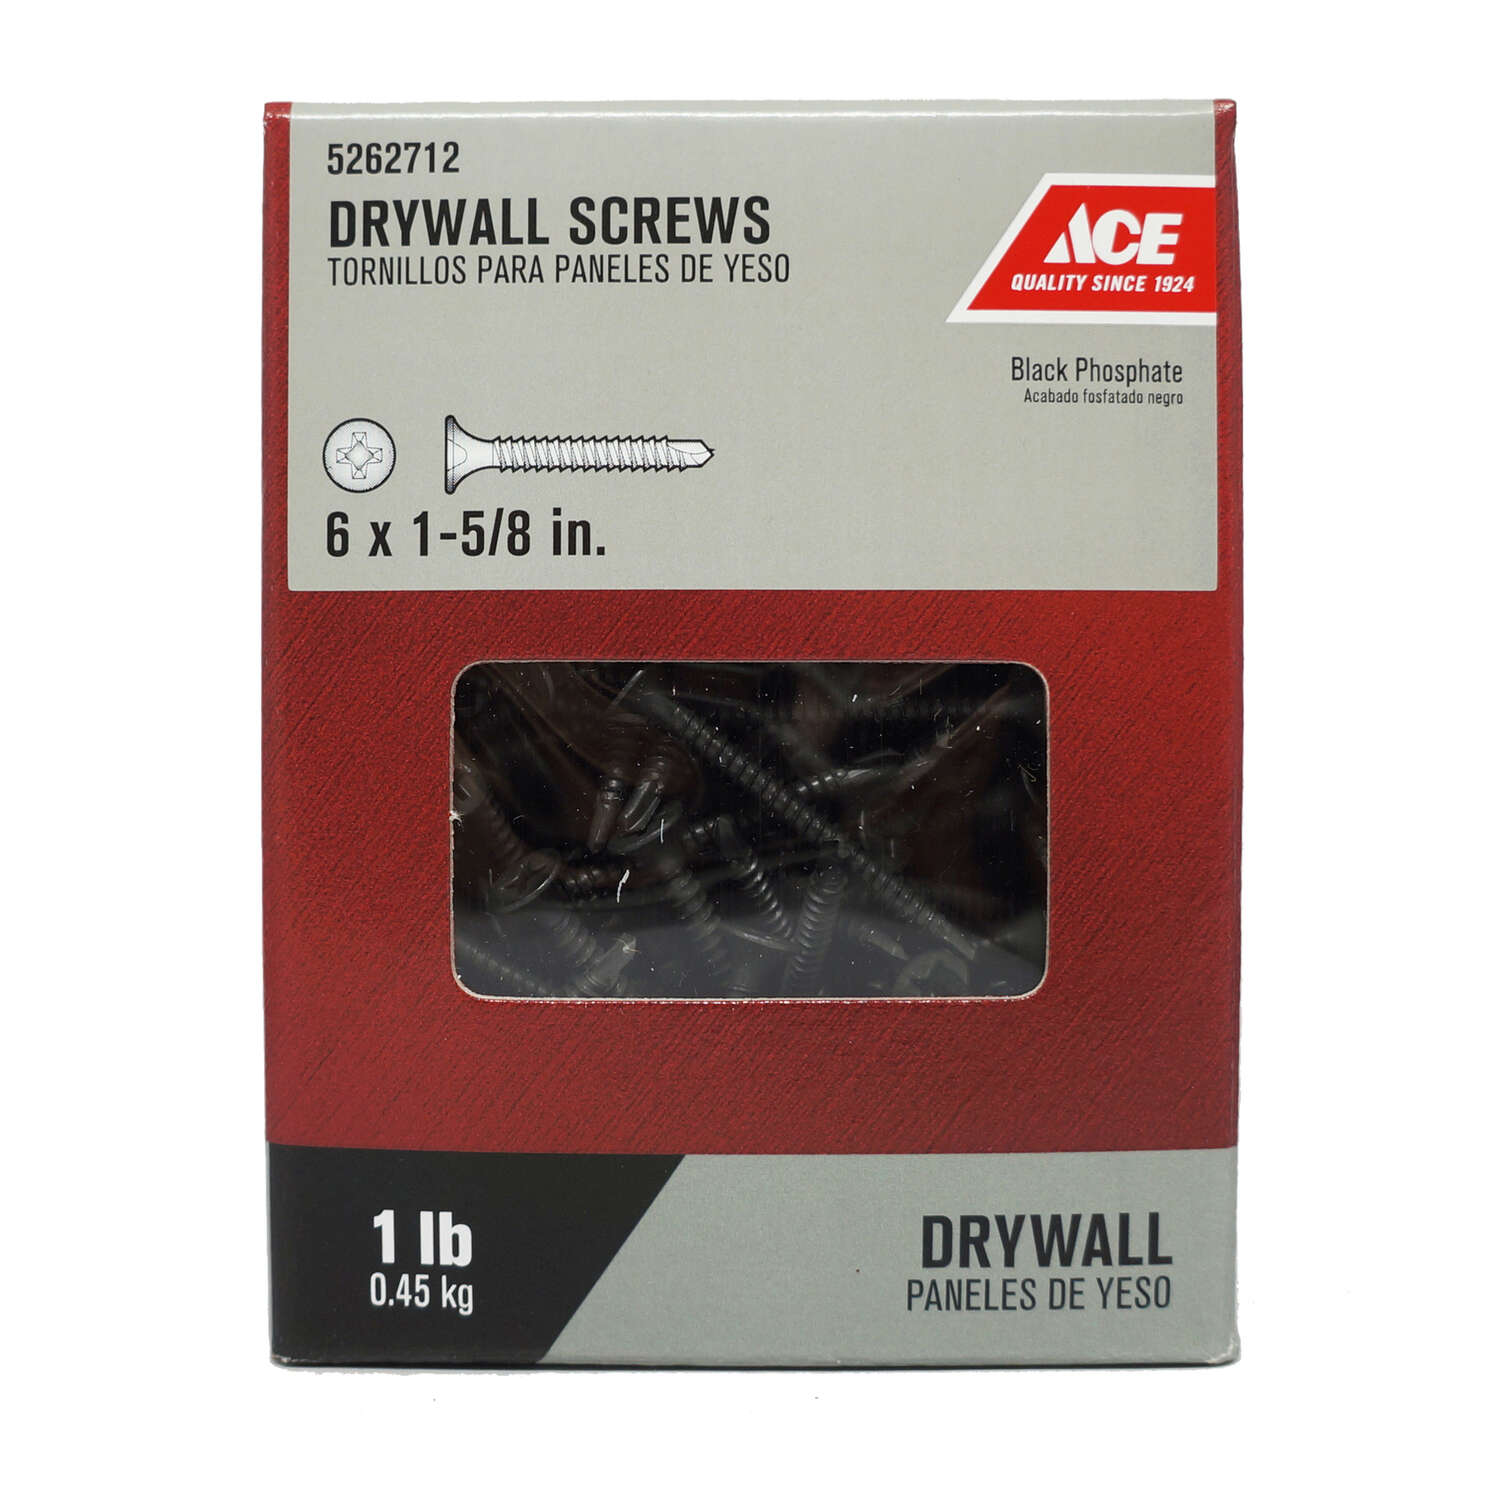 Ace No. 6 x 1-5/8 in. L Phillips Drywall Screws 1 lb. 202 pk